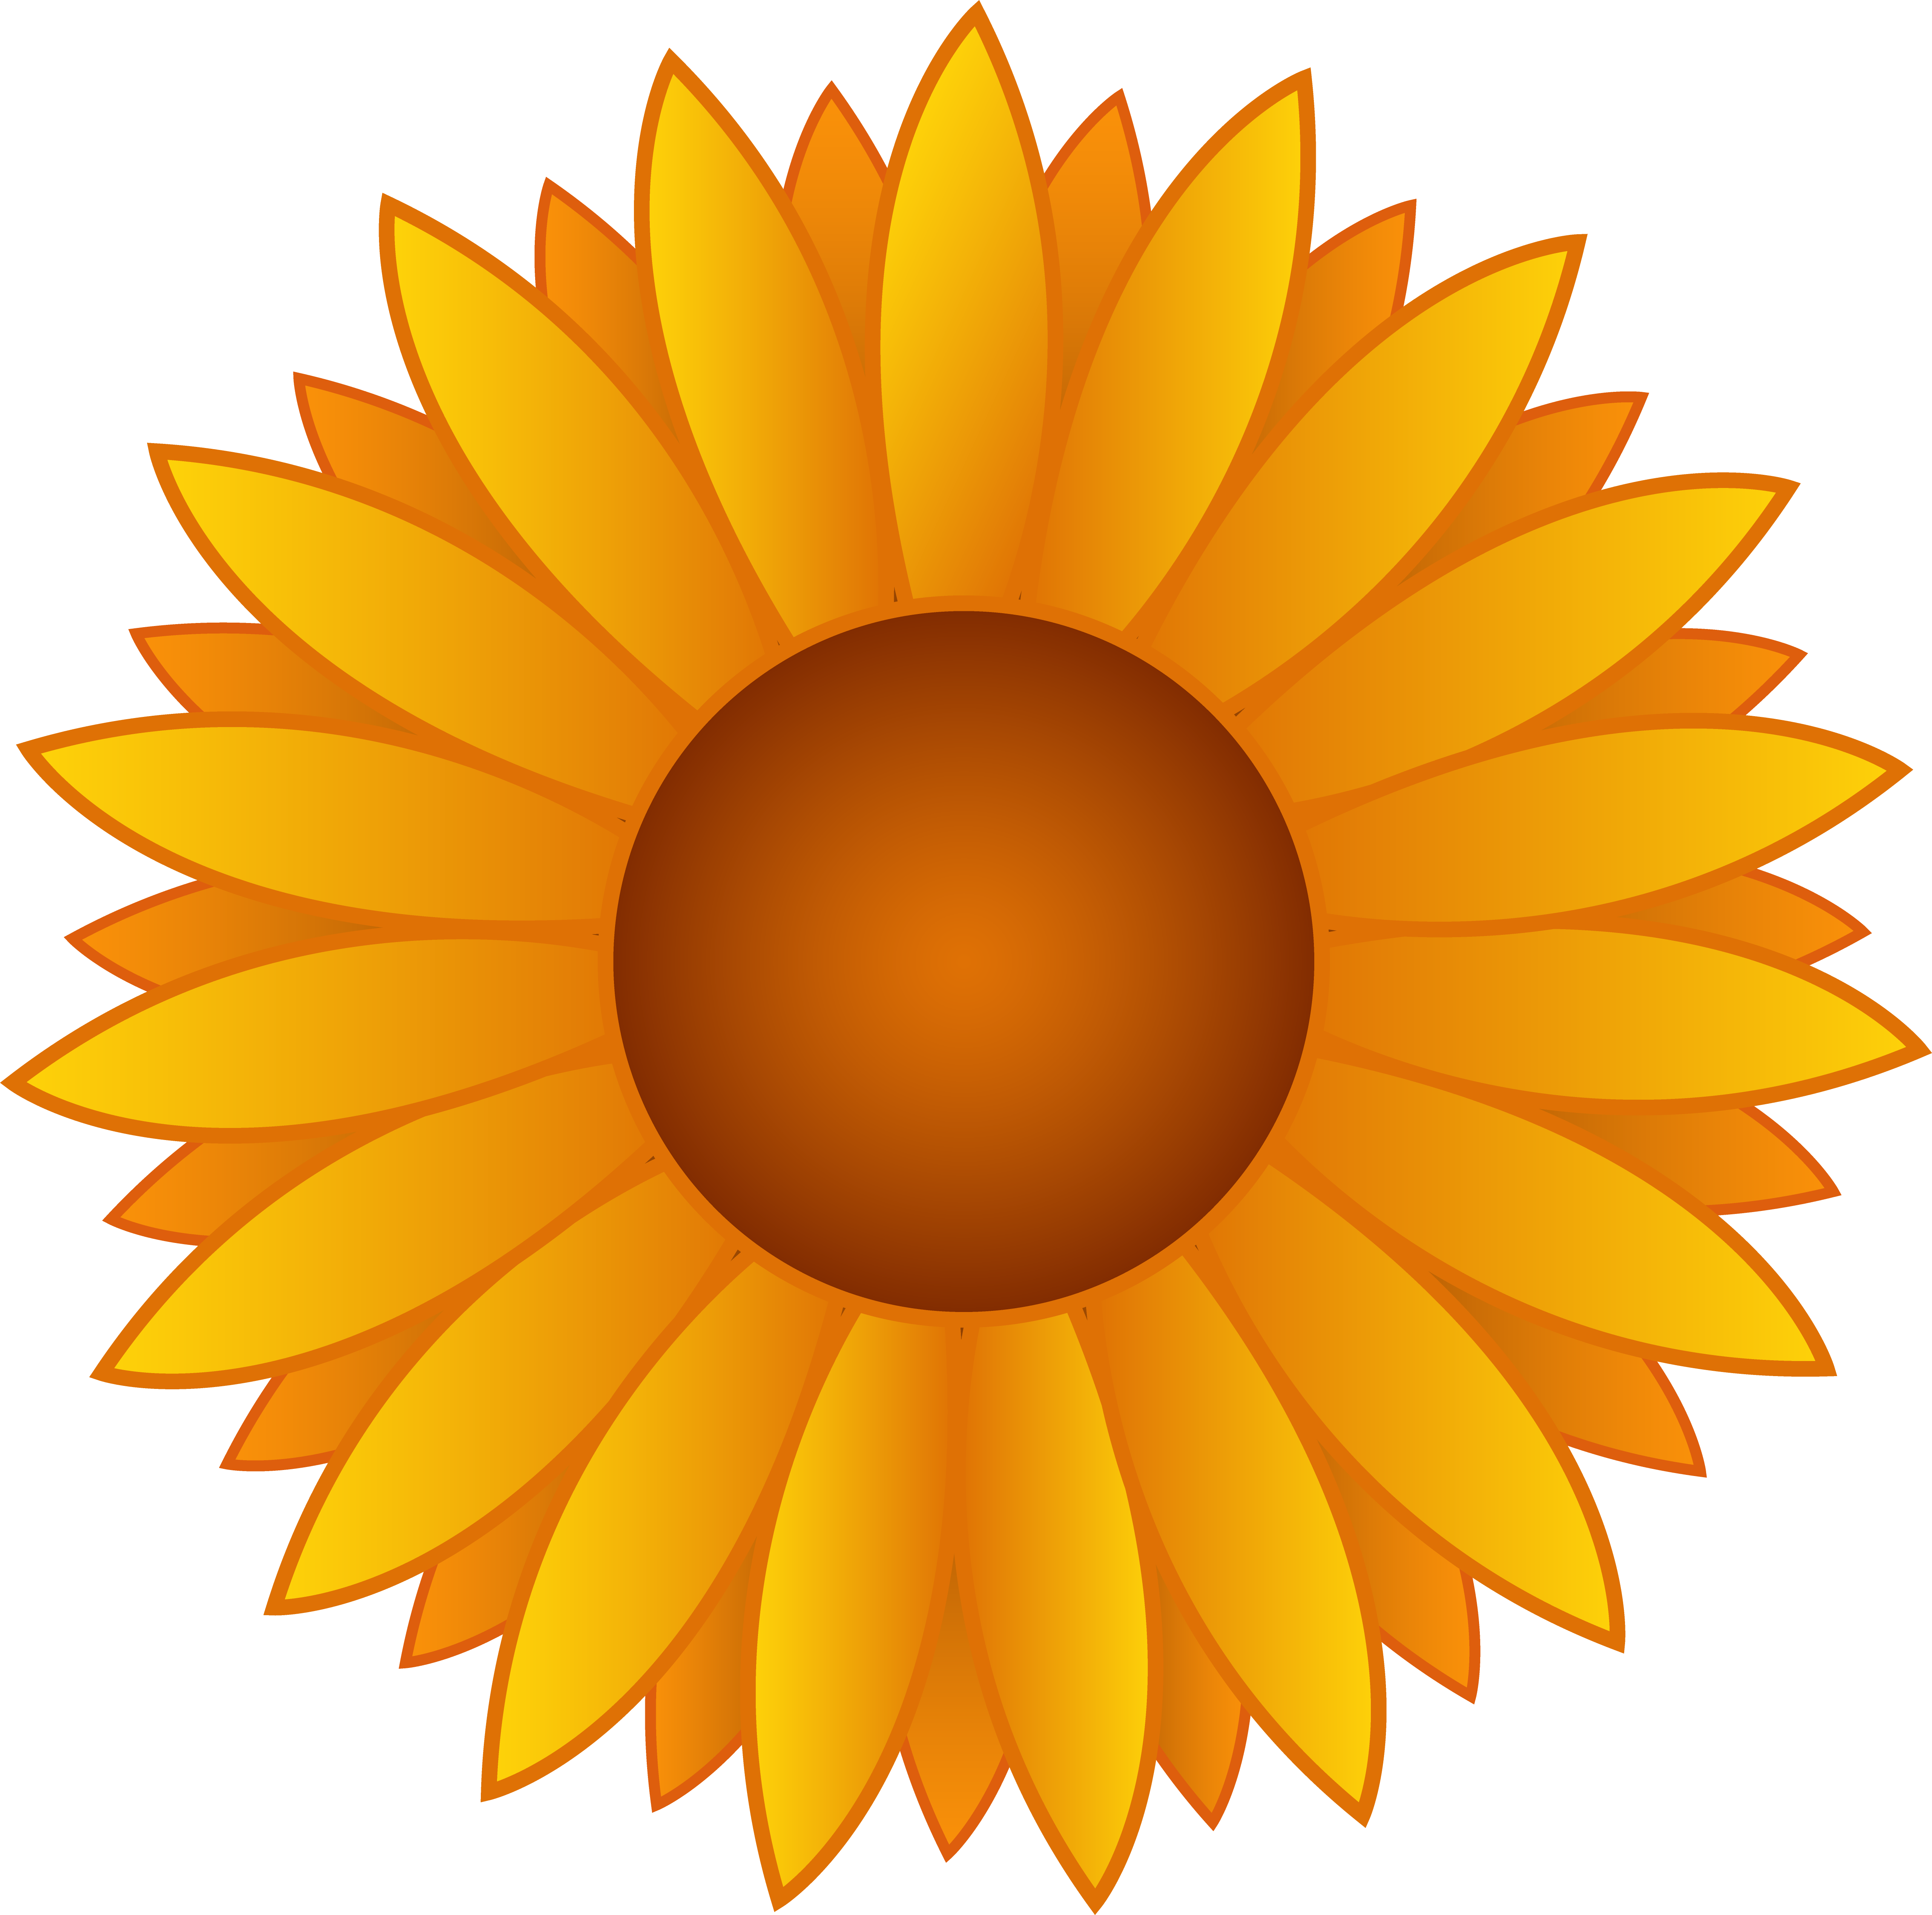 Sunflower clipart vector banner free Yellow Sunflower Vector Art - Free Clip Art banner free